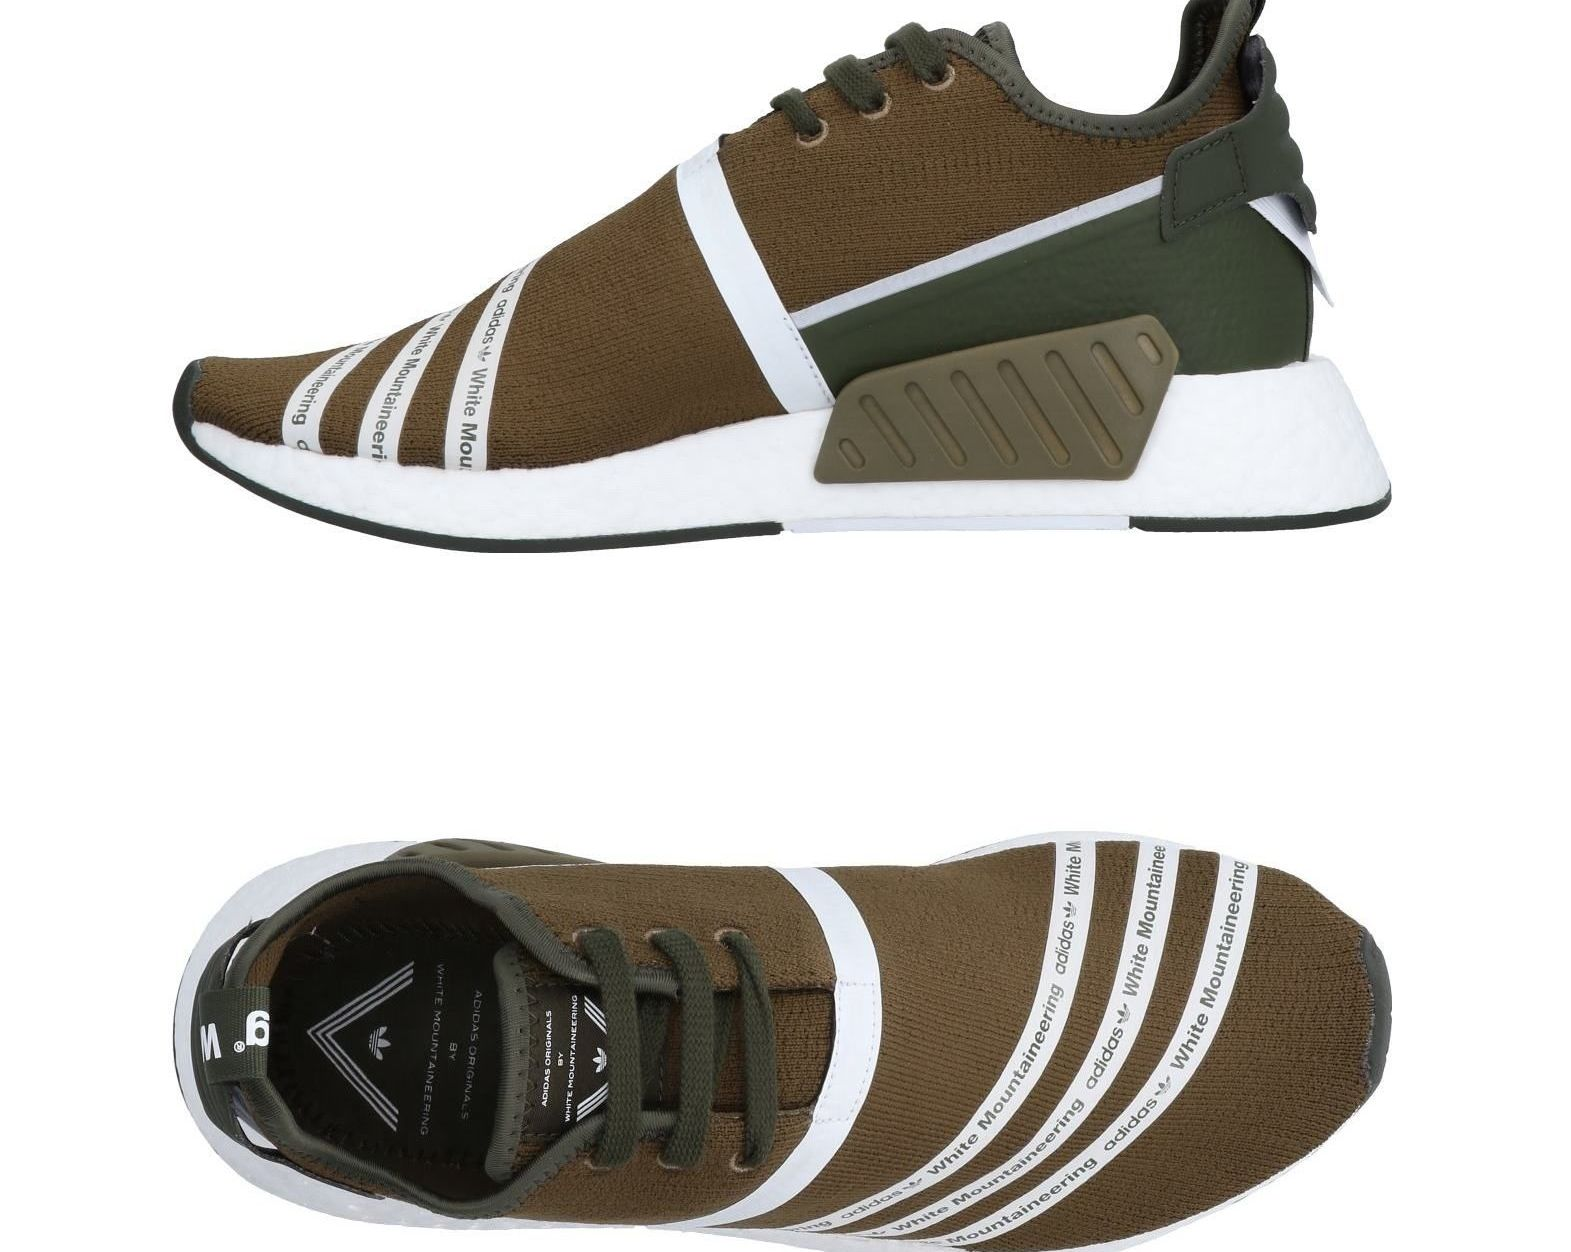 ADIDAS ORIGINALS by WHITE MOUNTAINEERING ΠΑΠΟΥΤΣΙΑ Παπούτσια τένις χαμηλά